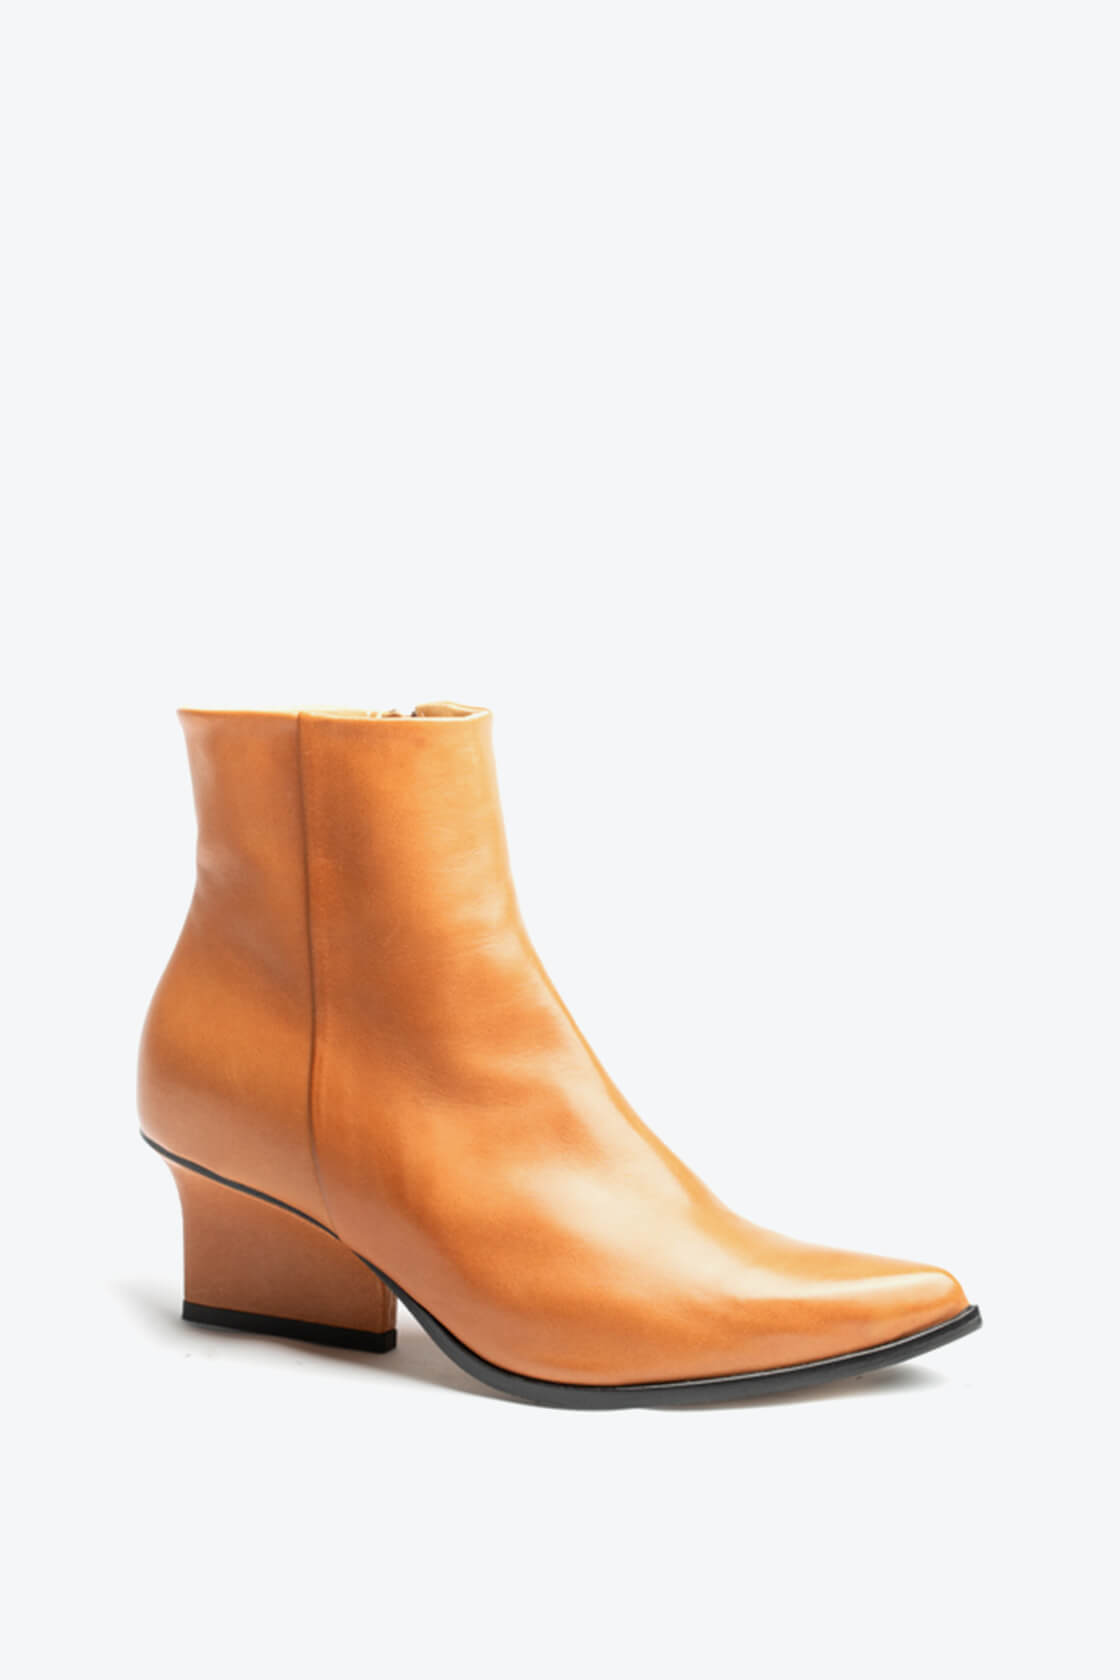 EJK0000079 Ryan ankle boots camel 1